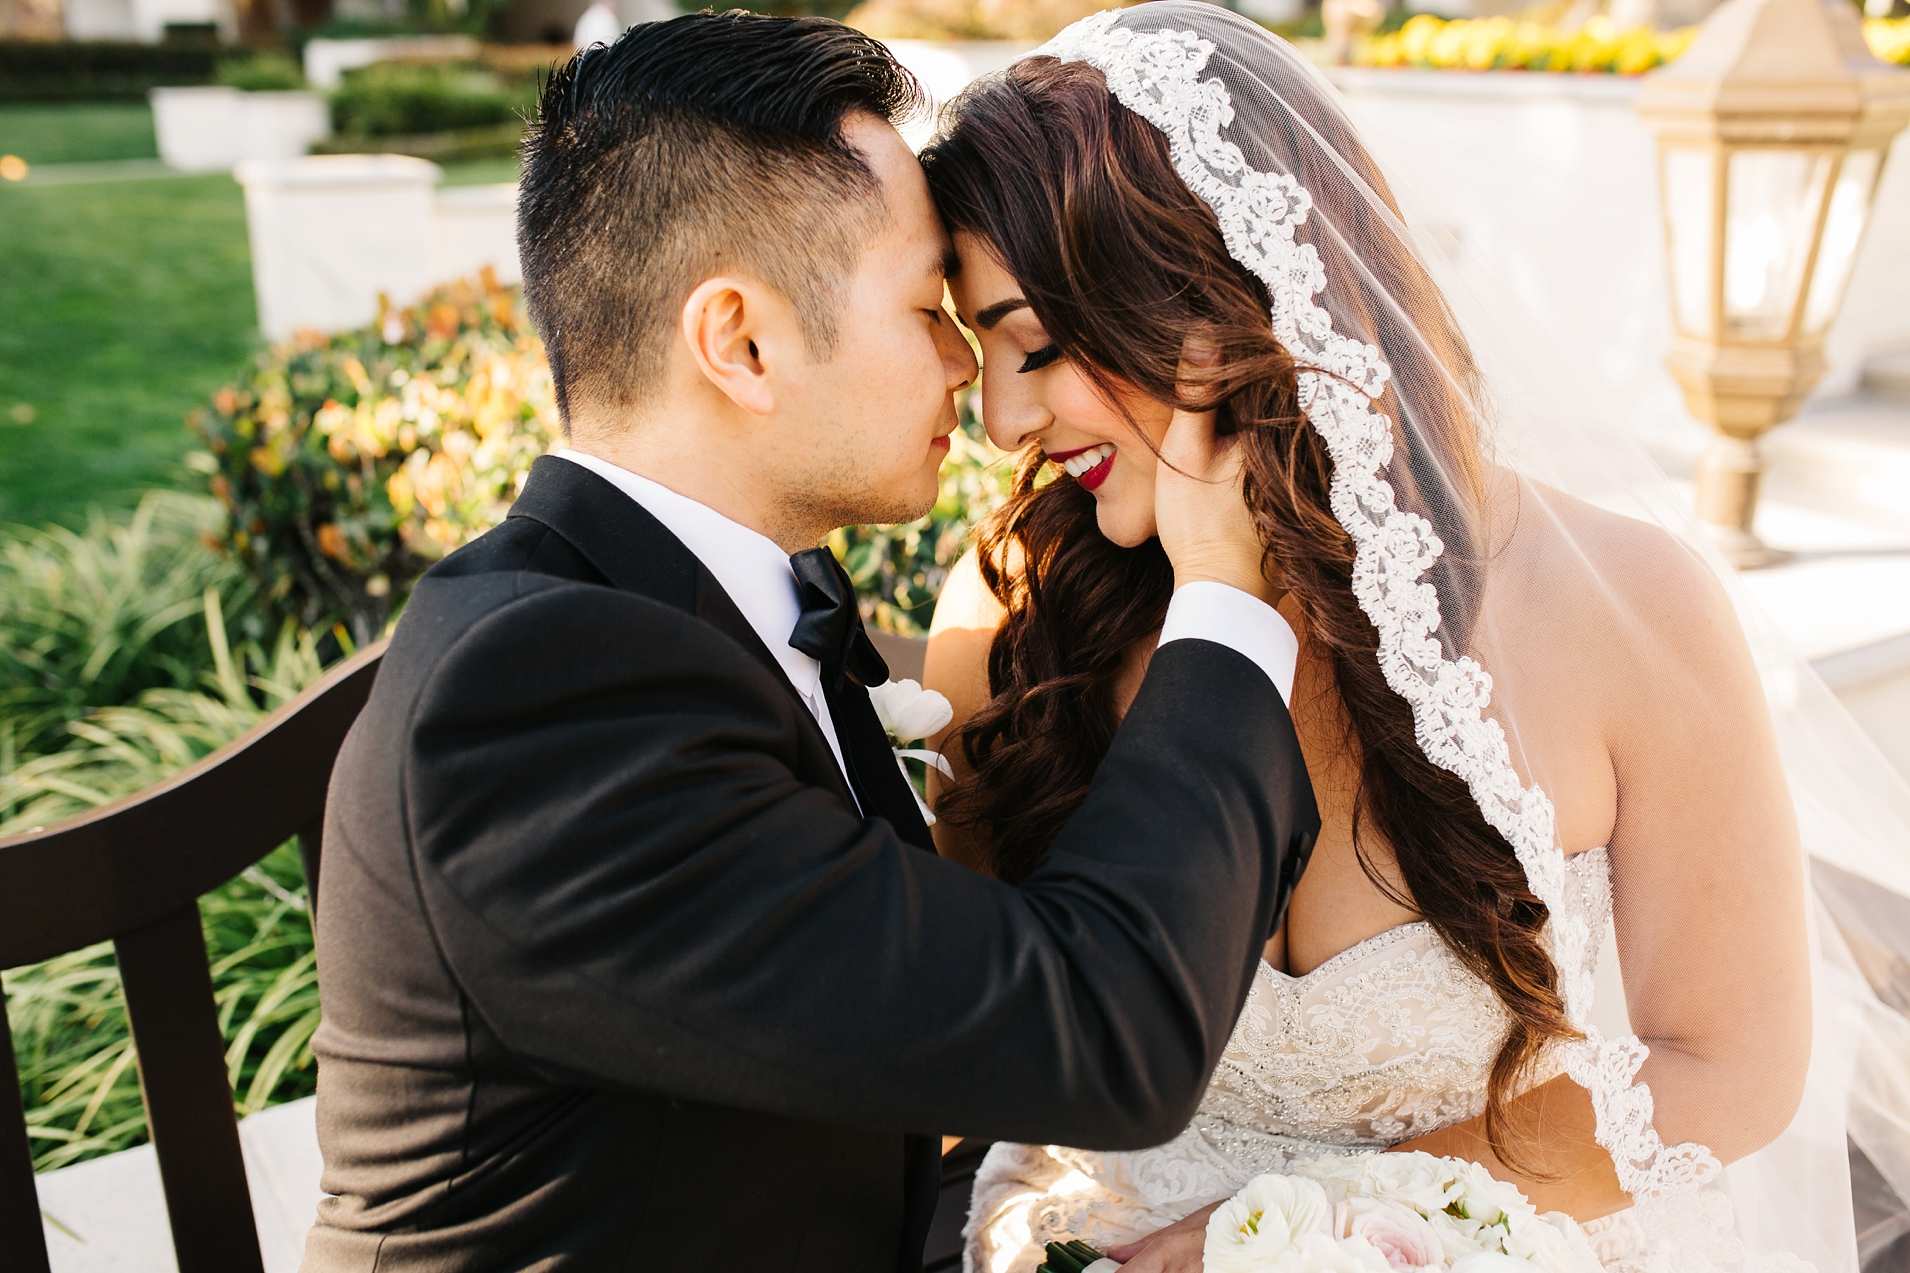 Sunset Bride and Groom Pictures-Romantic Bride and Groom Photos-Huntington Beach Wedding